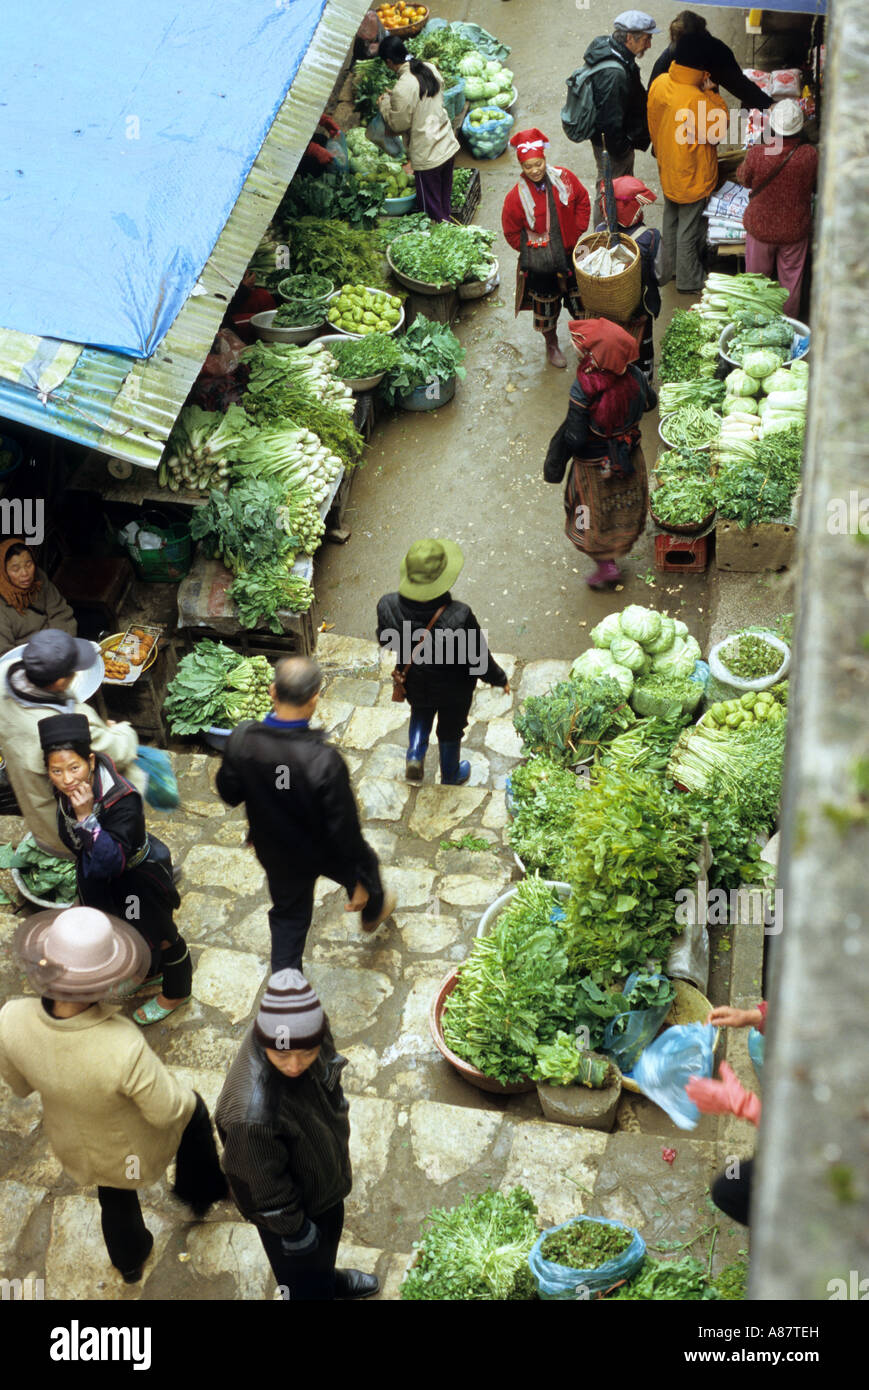 Overhead view of shoppers walking through the Saturday market, Sapa, Viet Nam Stock Photo